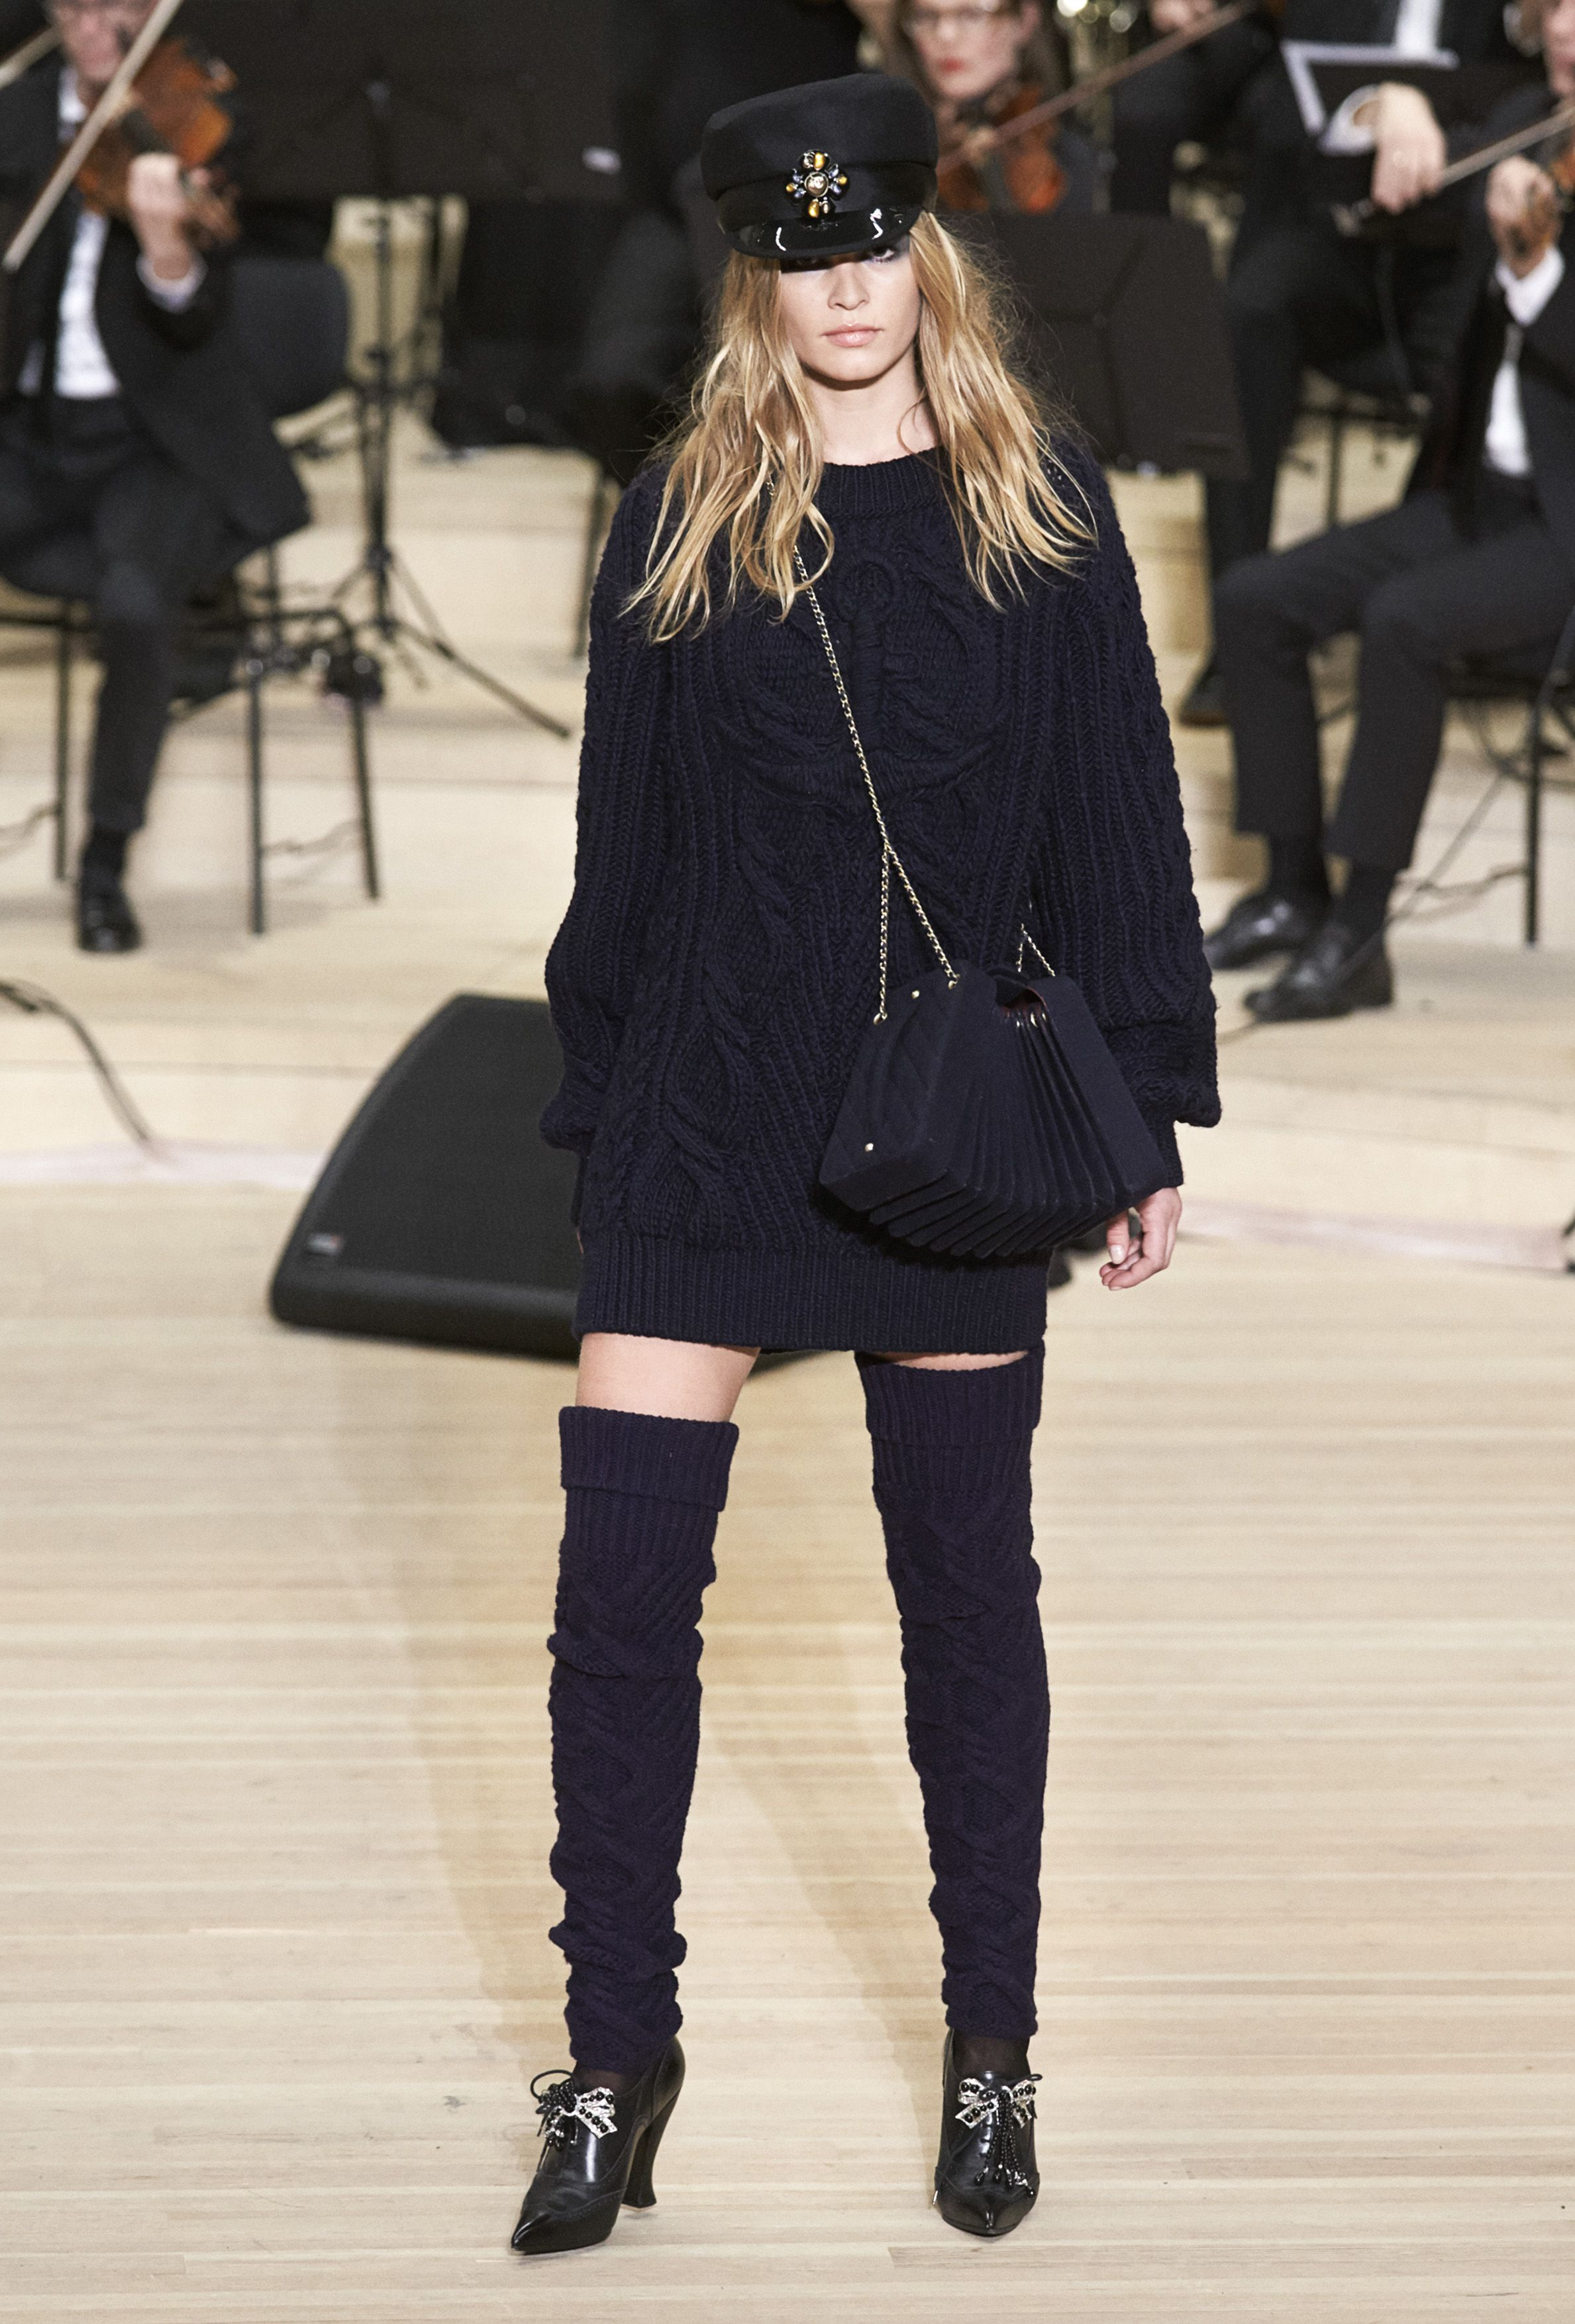 """Chanel Metiers d'Art"""" Fashion Show"""